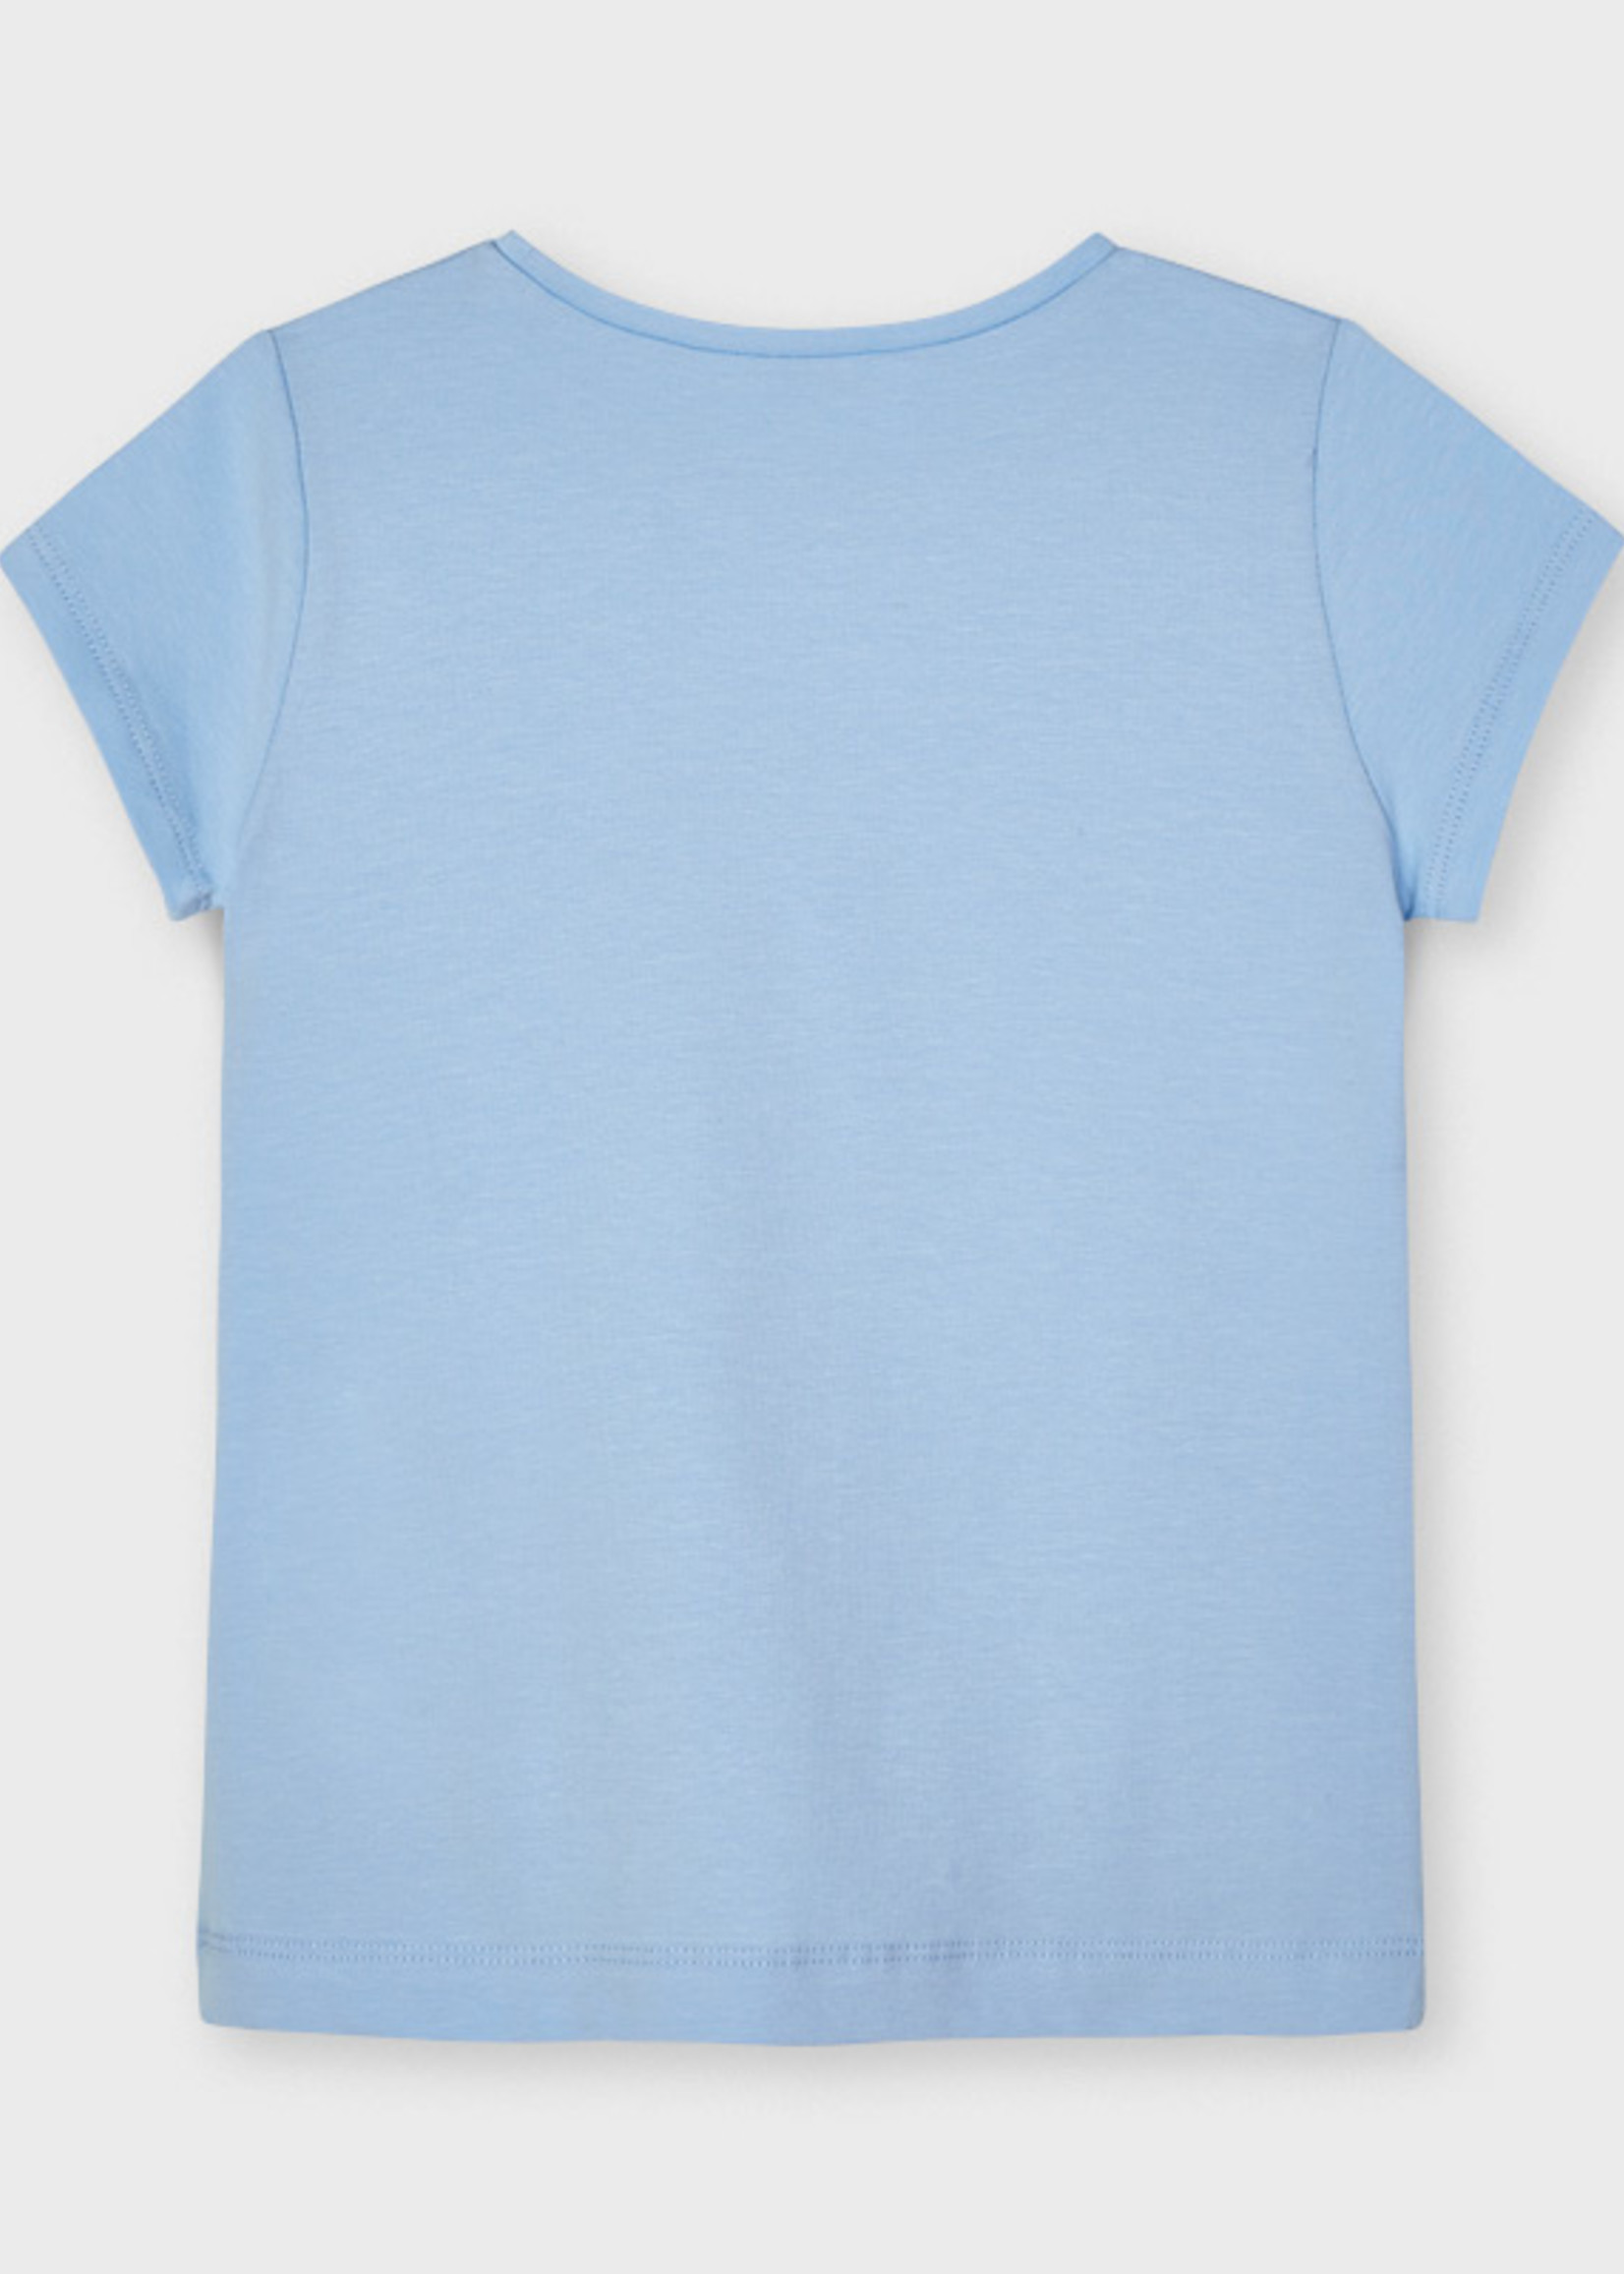 Mayoral Mayoral  S/s t-shirt lightblue